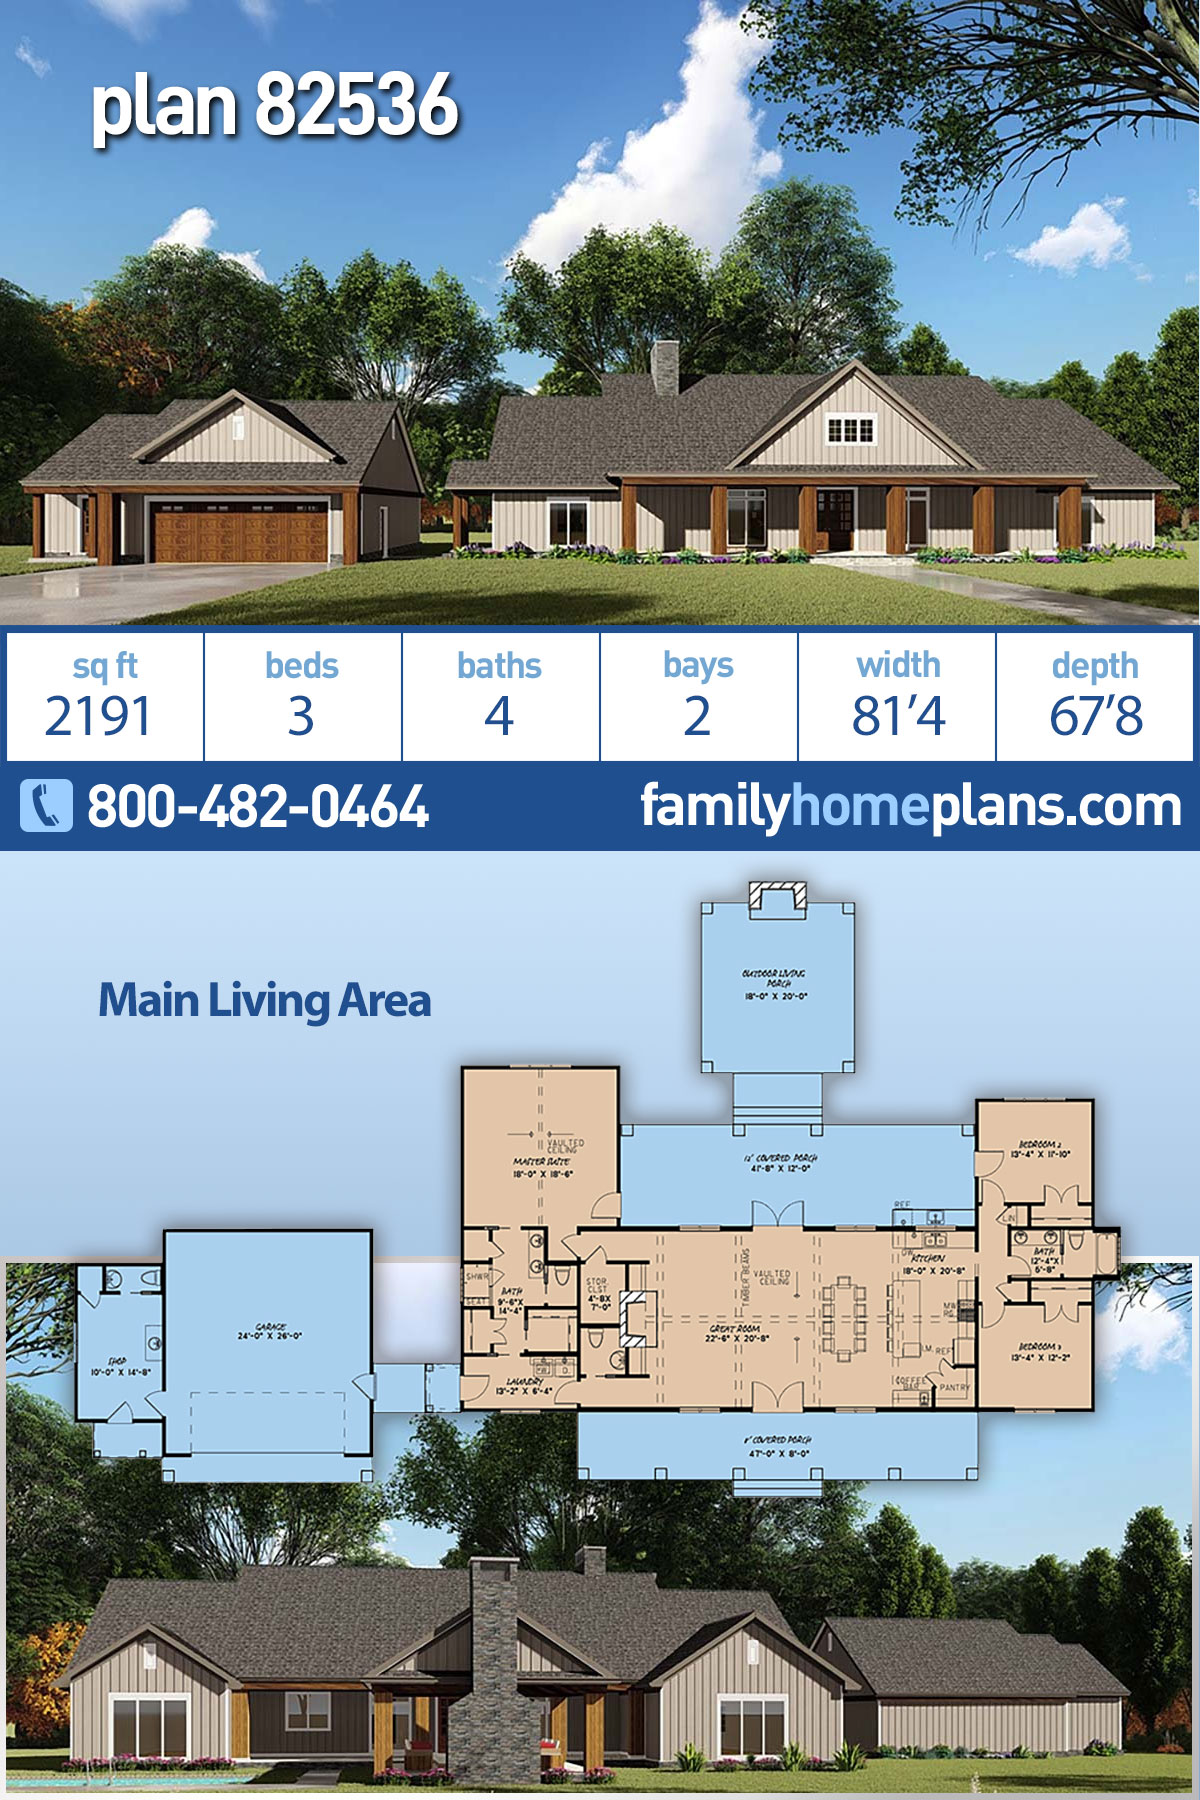 Bungalow, Craftsman, Farmhouse House Plan 82536 with 3 Beds, 4 Baths, 2 Car Garage